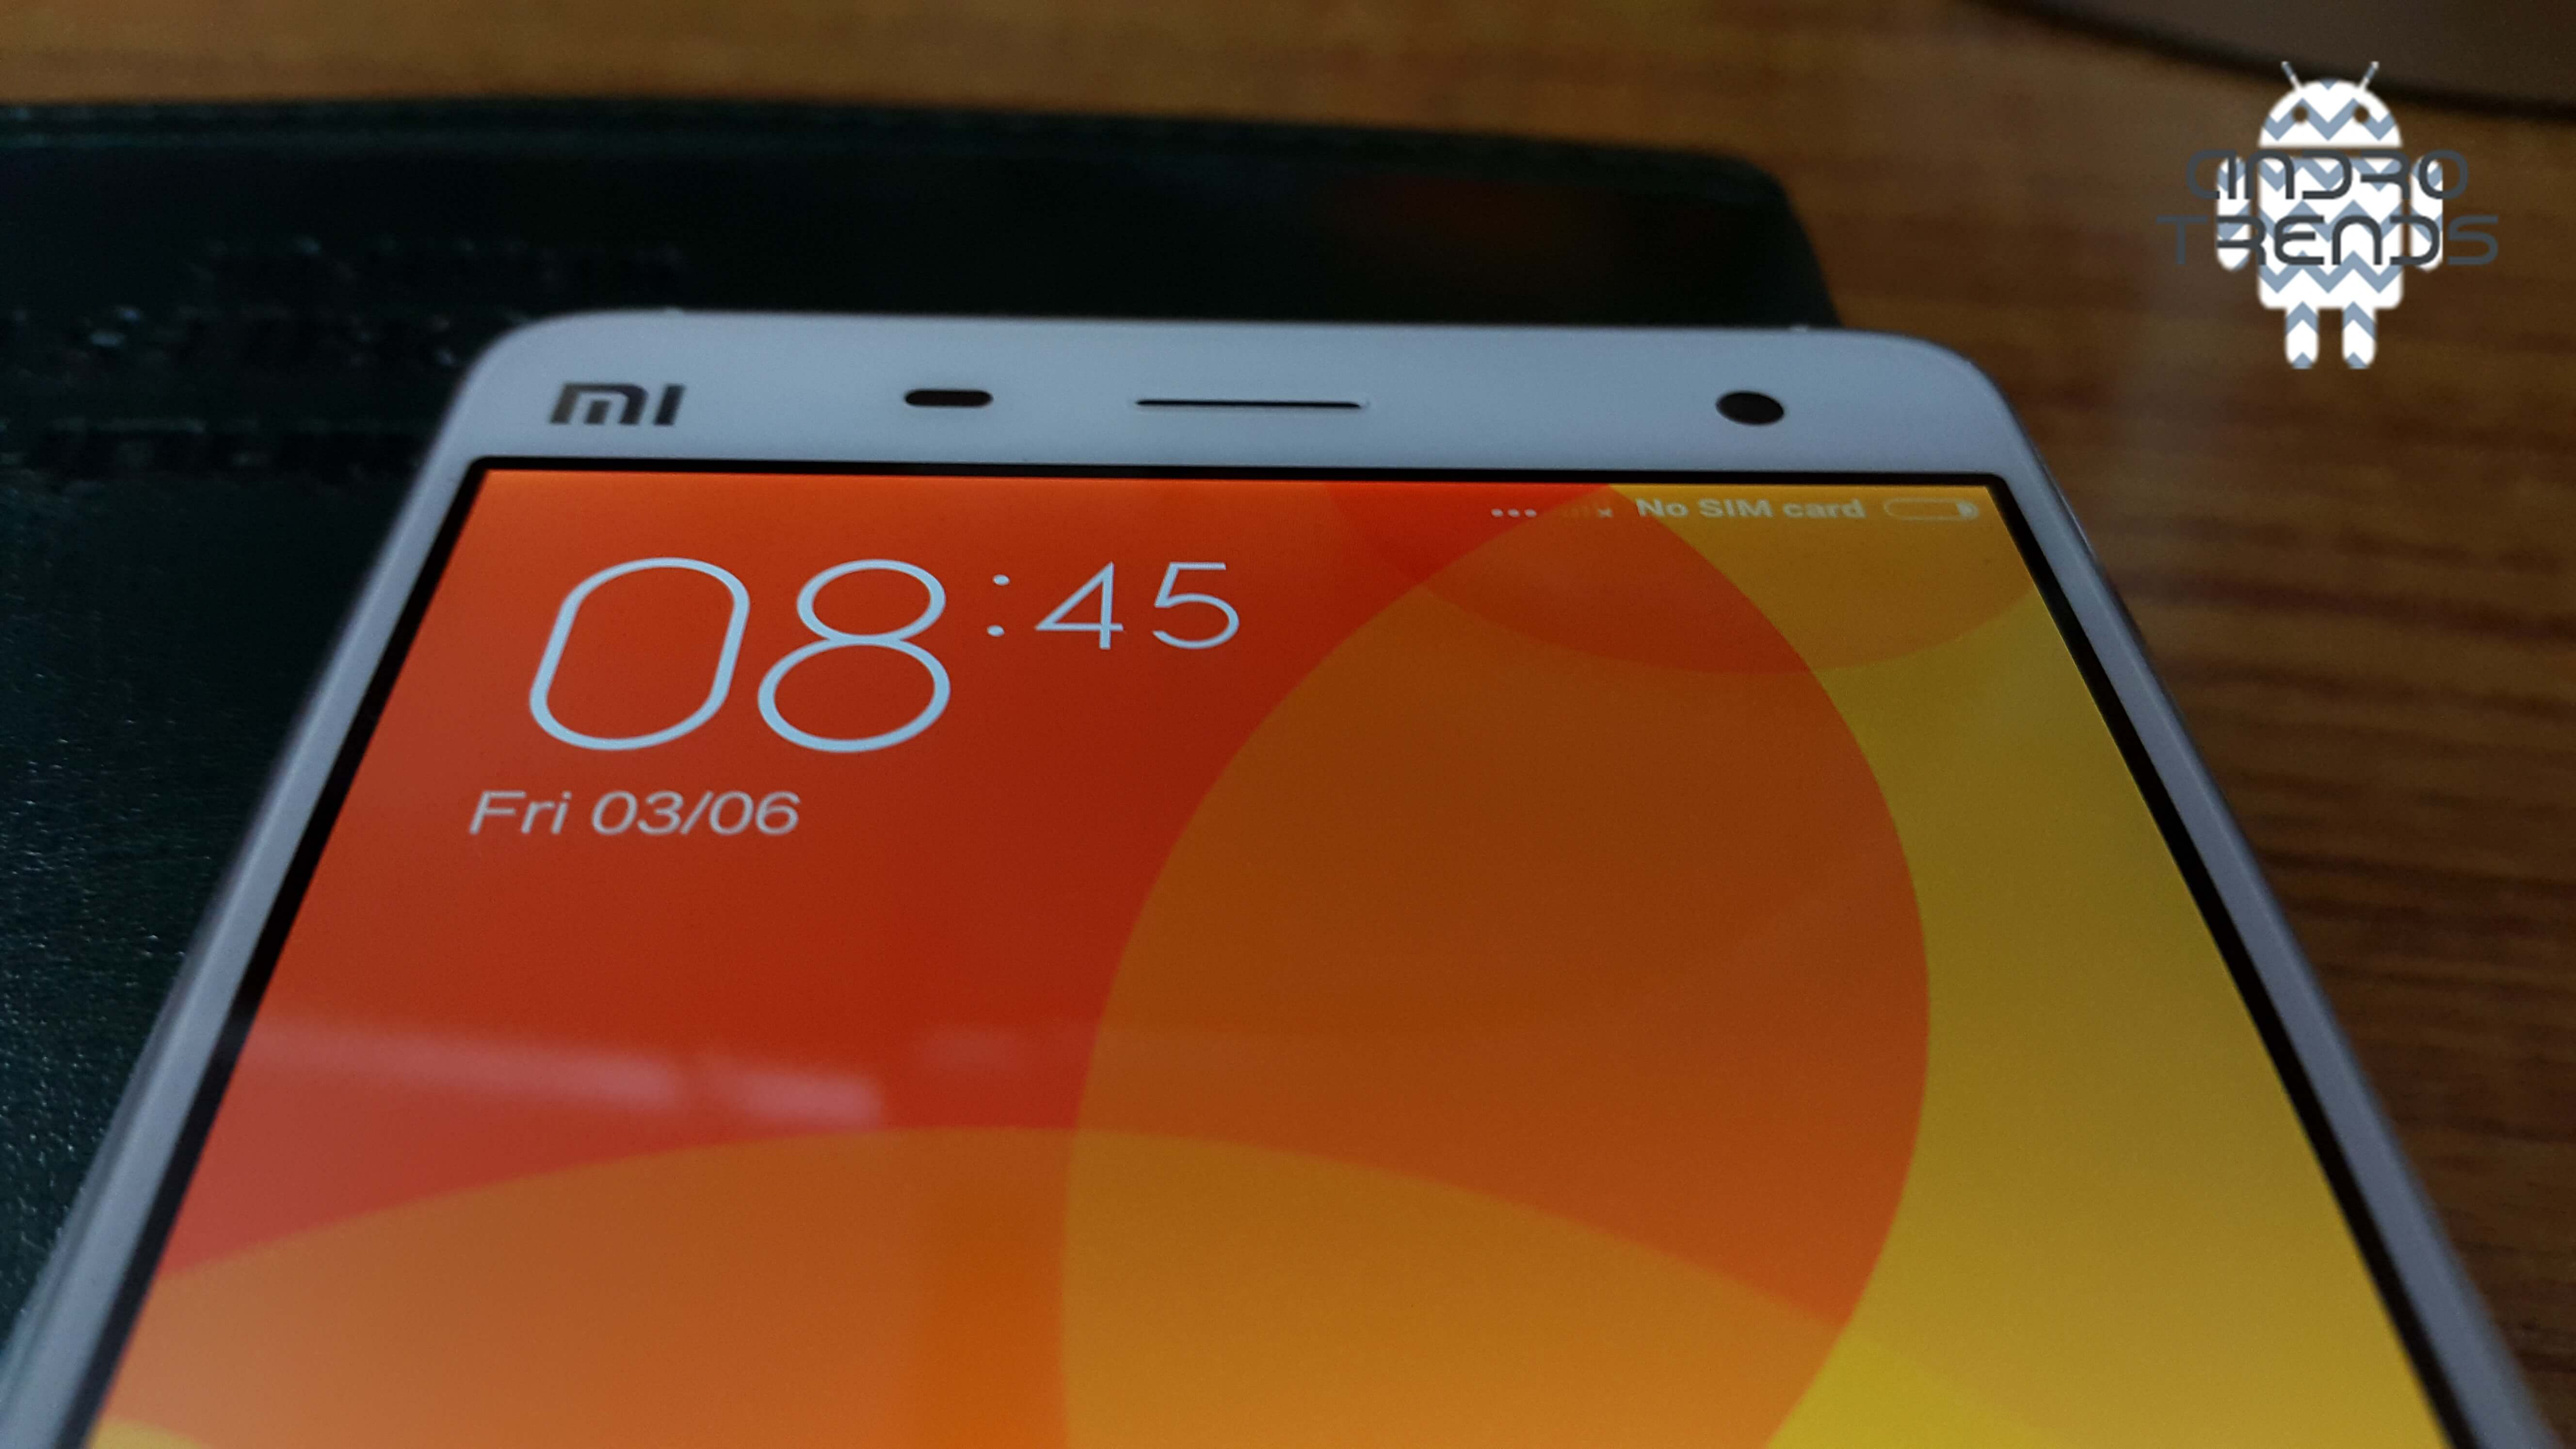 Xiaomi Mi4 : Camera, Benchmarking and Detailed Review